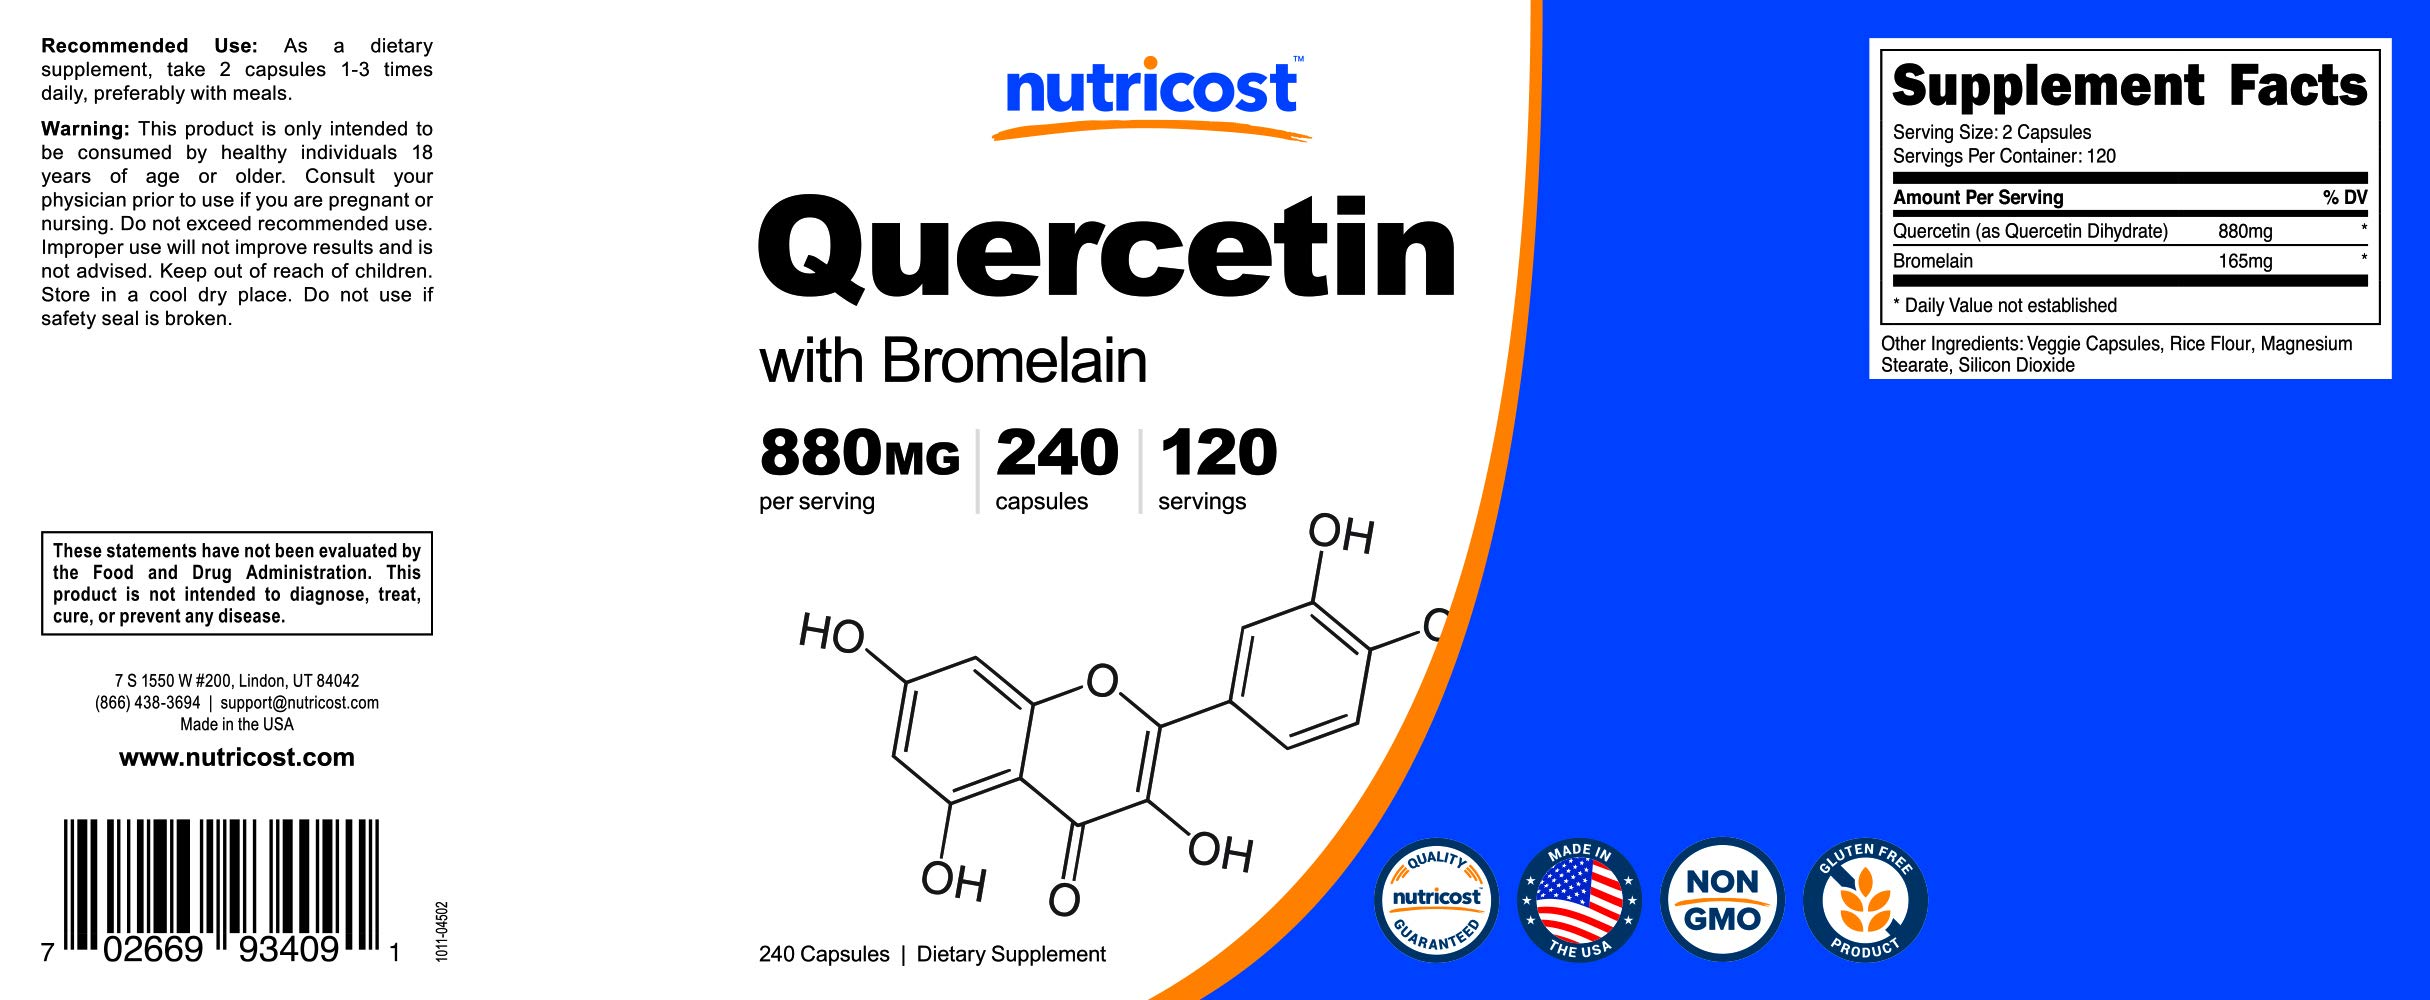 Nutricost Quercetin 800mg, 240 Caps With Bromelain (2 Bottles) by Nutricost (Image #7)